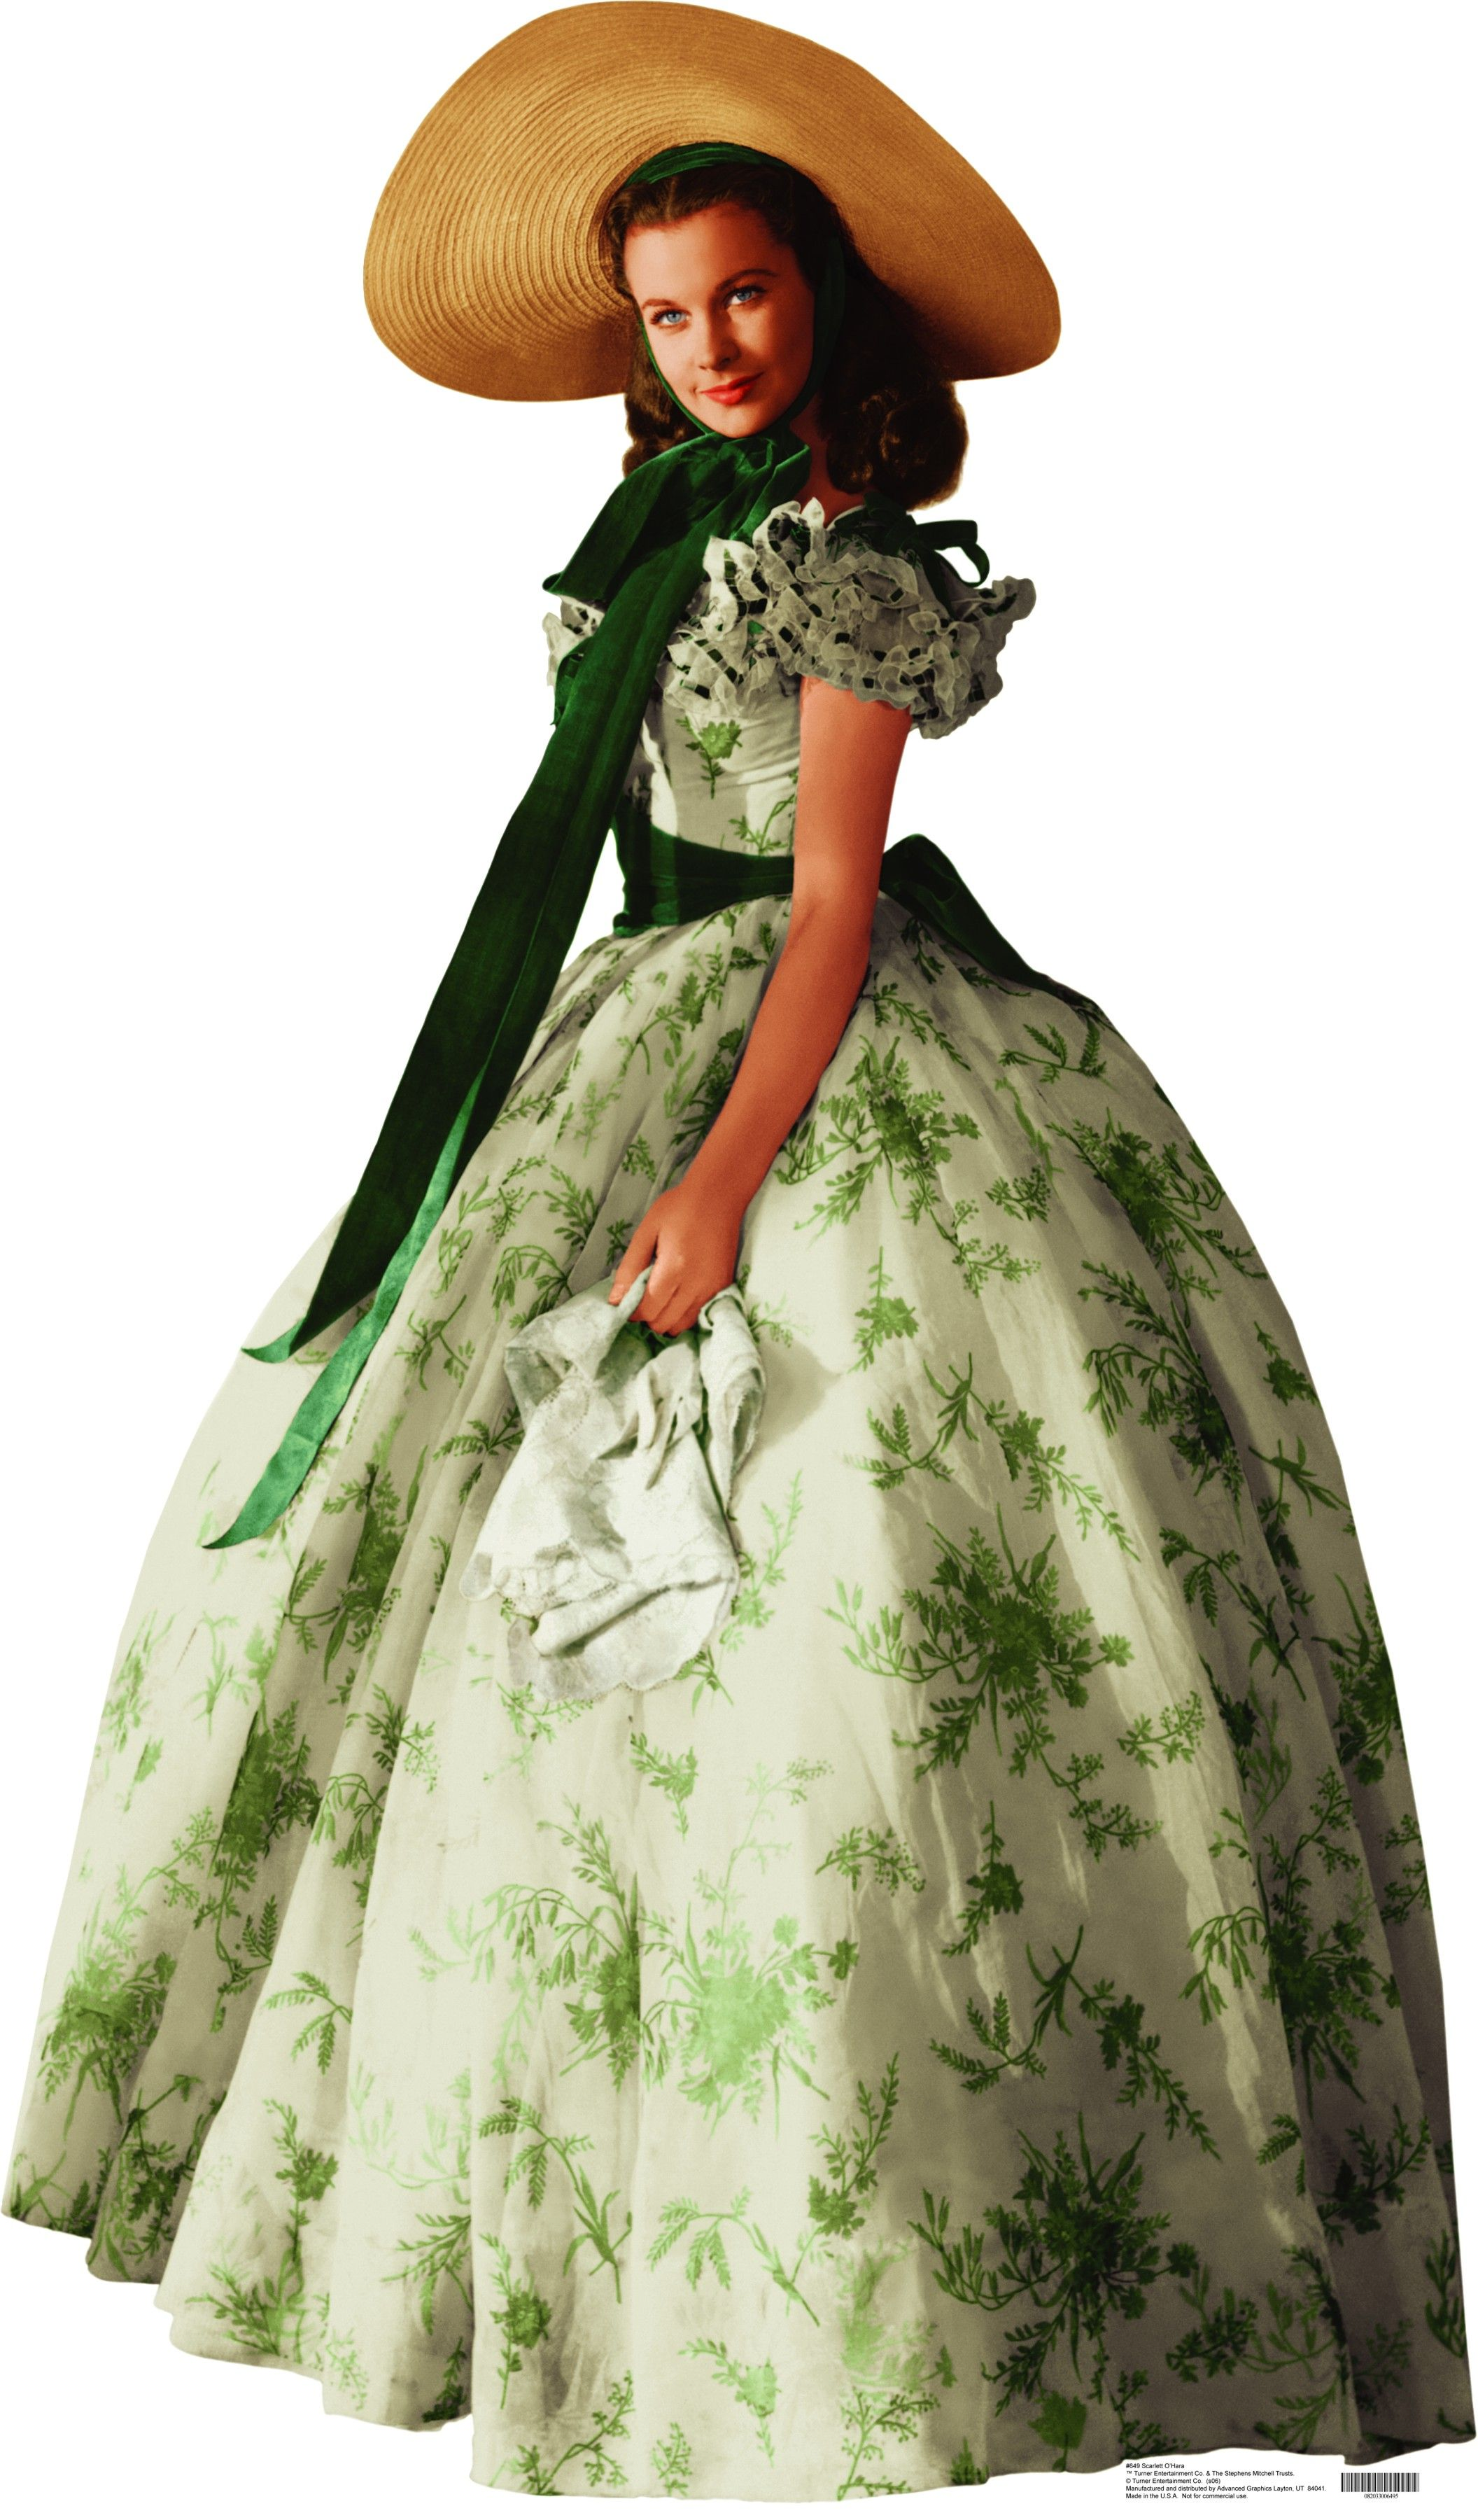 Southern Belle Scarlet O/'Hara Gone with the Wind Girls Costume